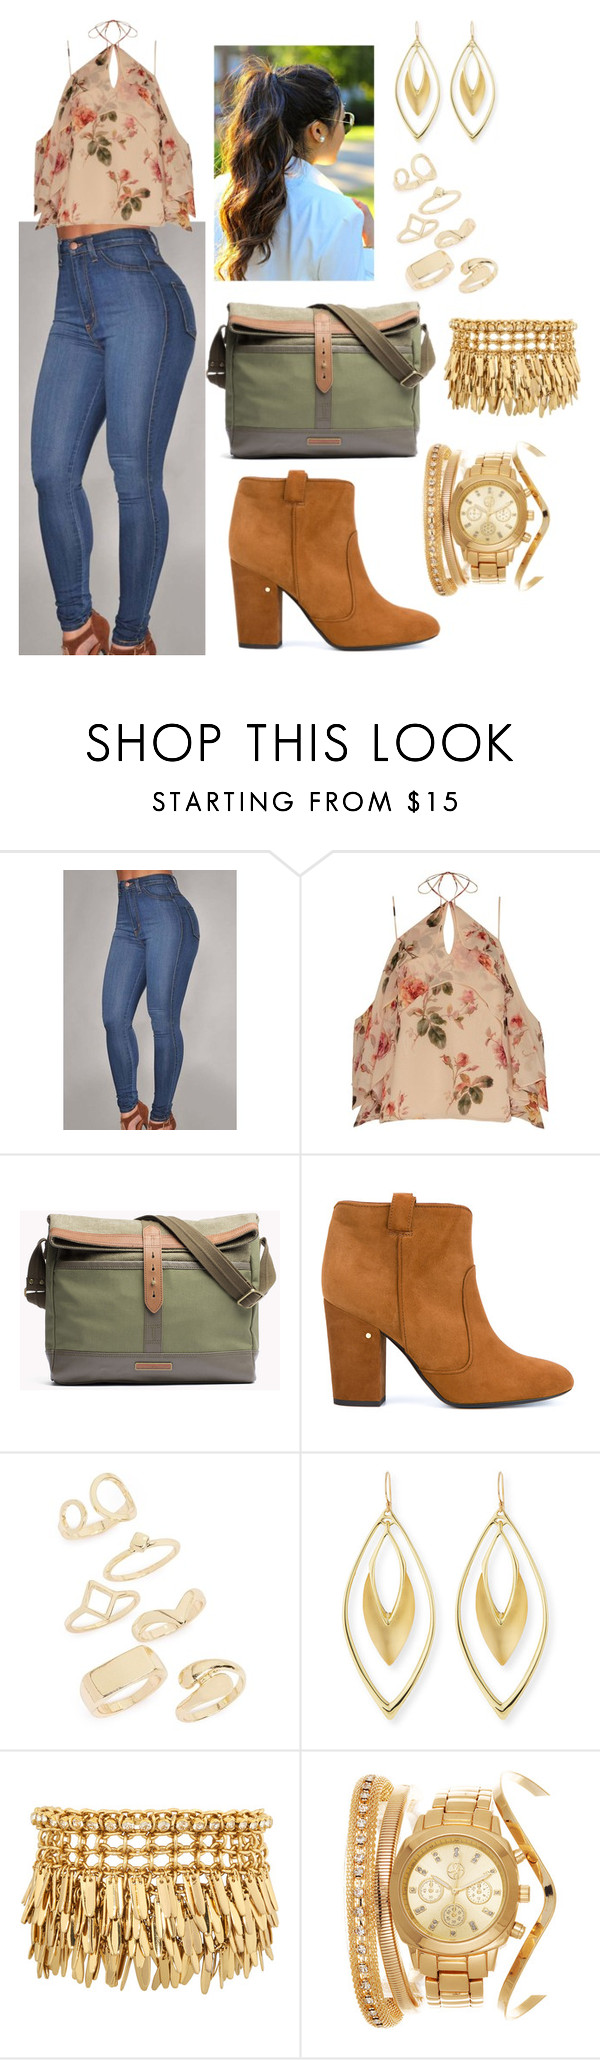 """""""Sem título #939"""" by clariinhafloor on Polyvore featuring moda, Exclusive for Intermix, Laurence Dacade, Topshop, Alexis Bittar e Henri Bendel"""